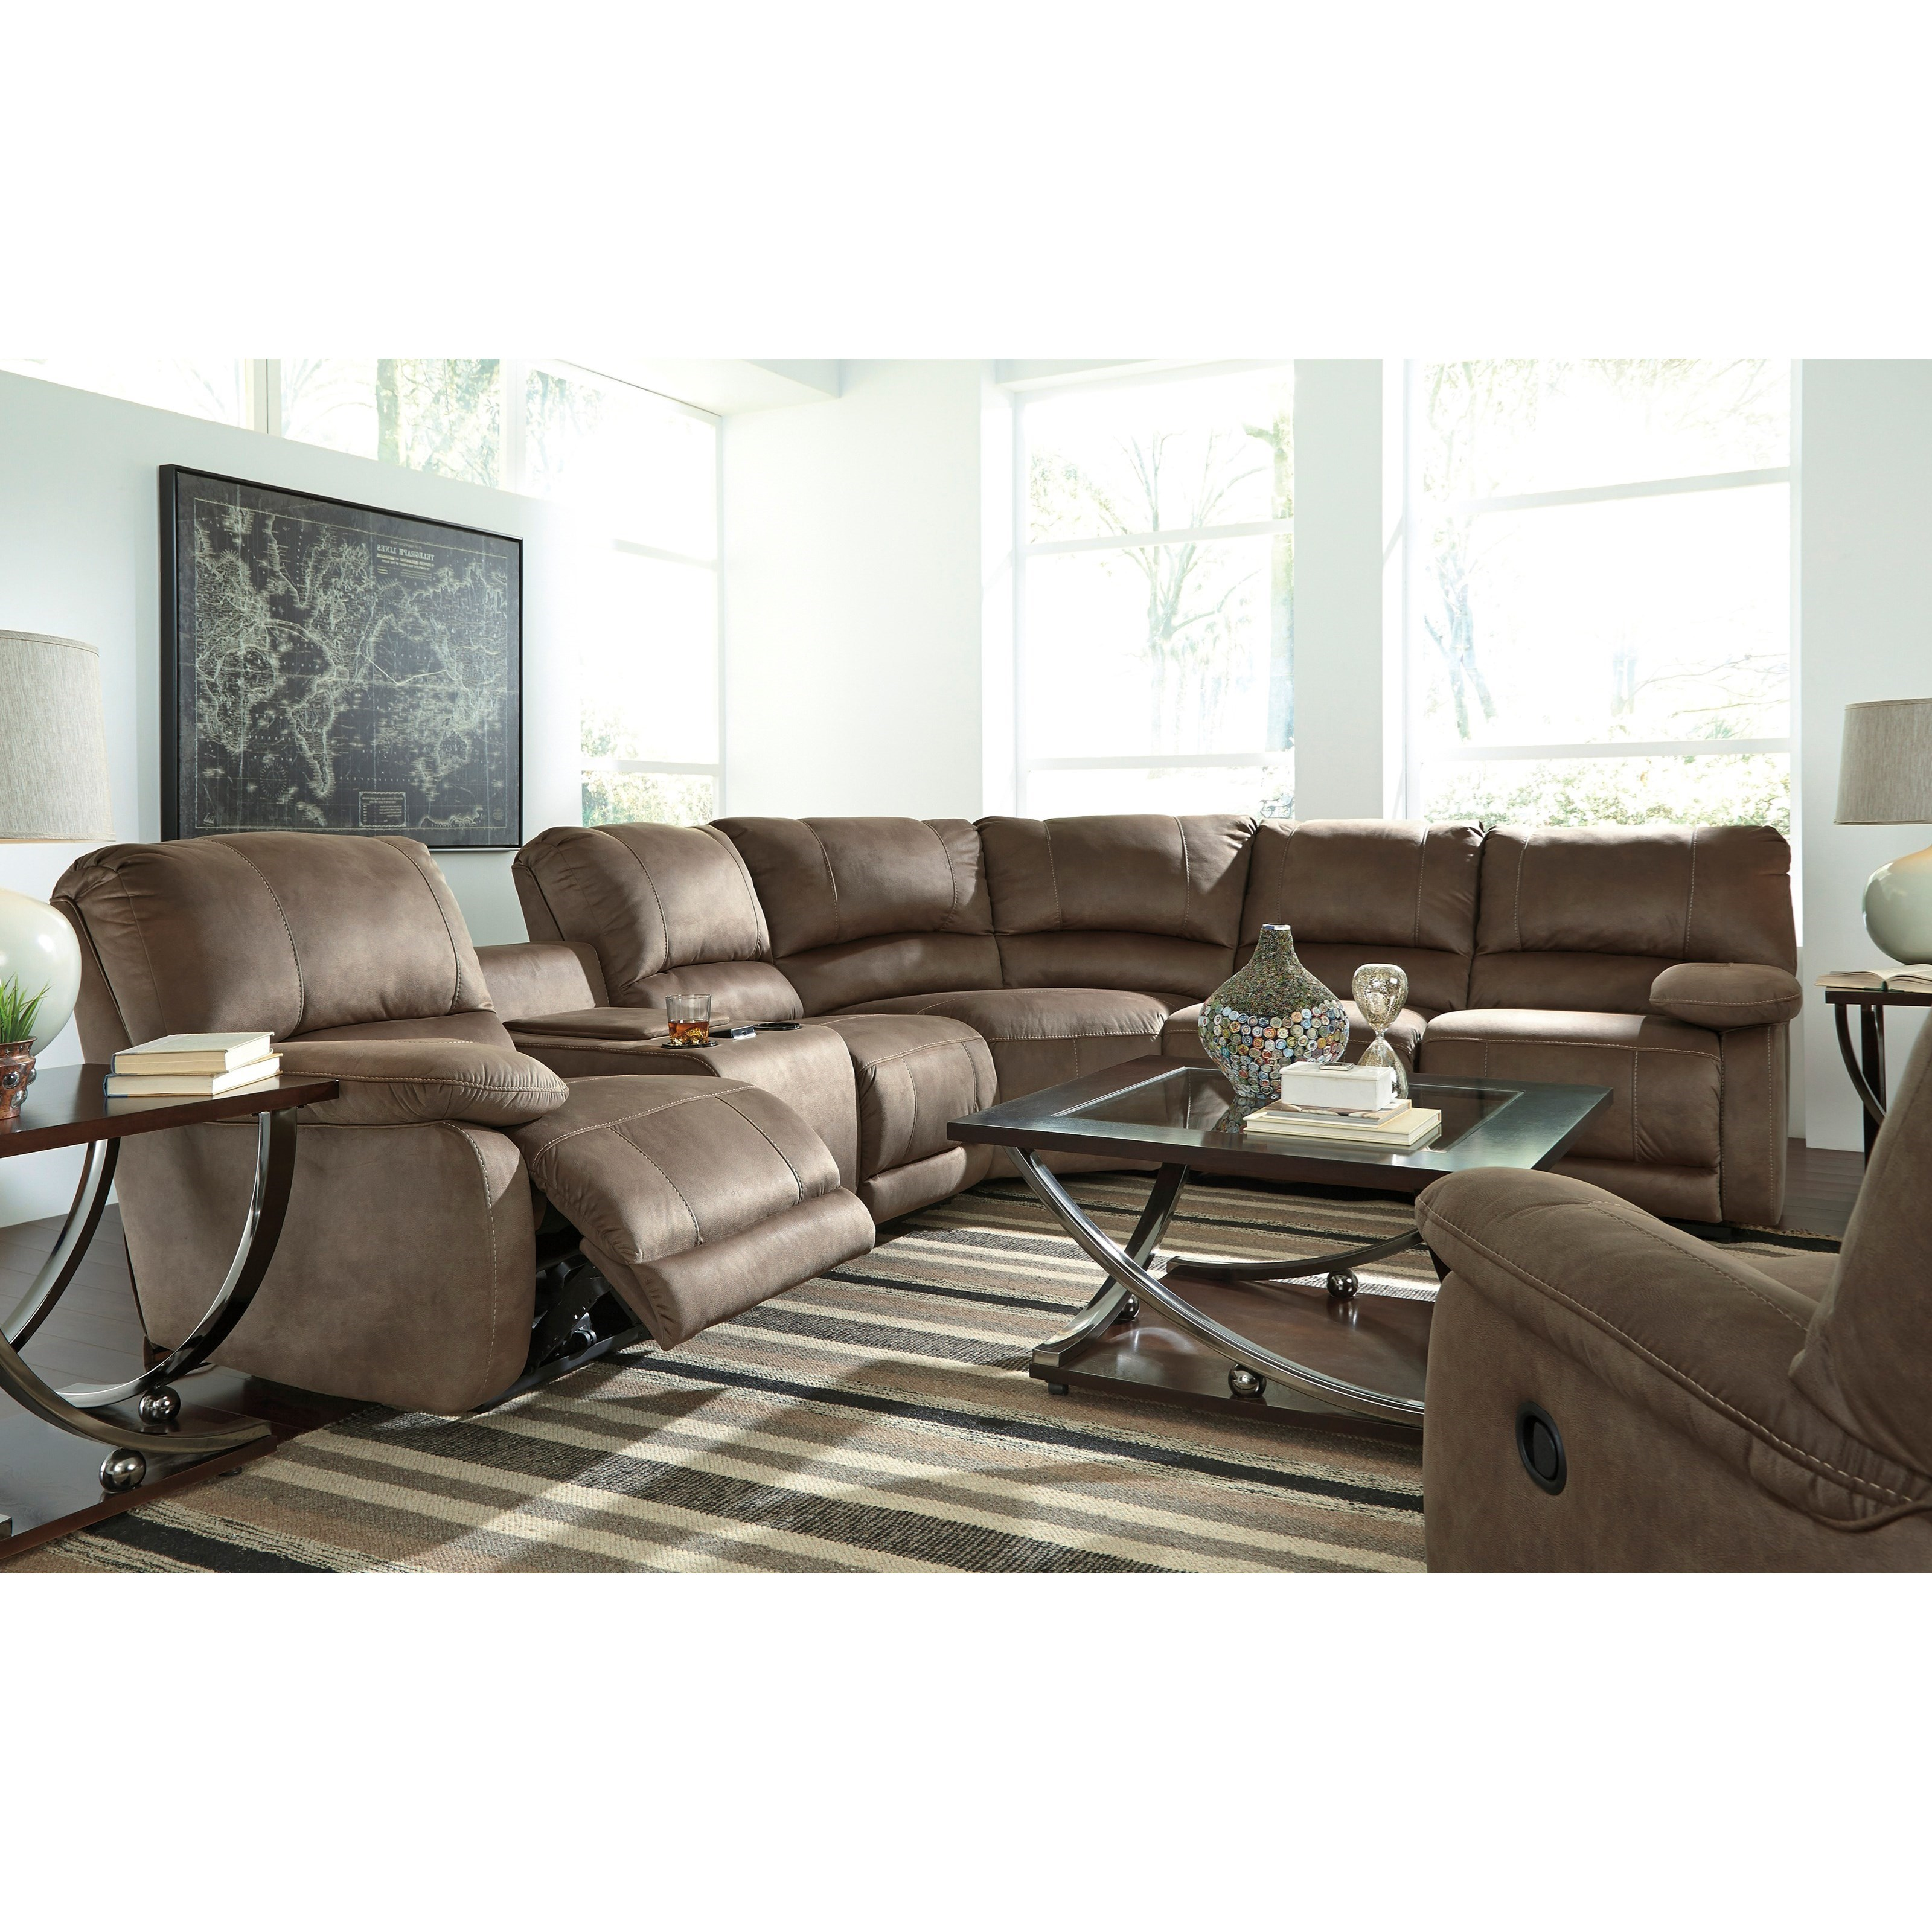 Signature Design by Ashley Seamus Reclining Living Room Group - Item Number: 41800 Living Room Group 2